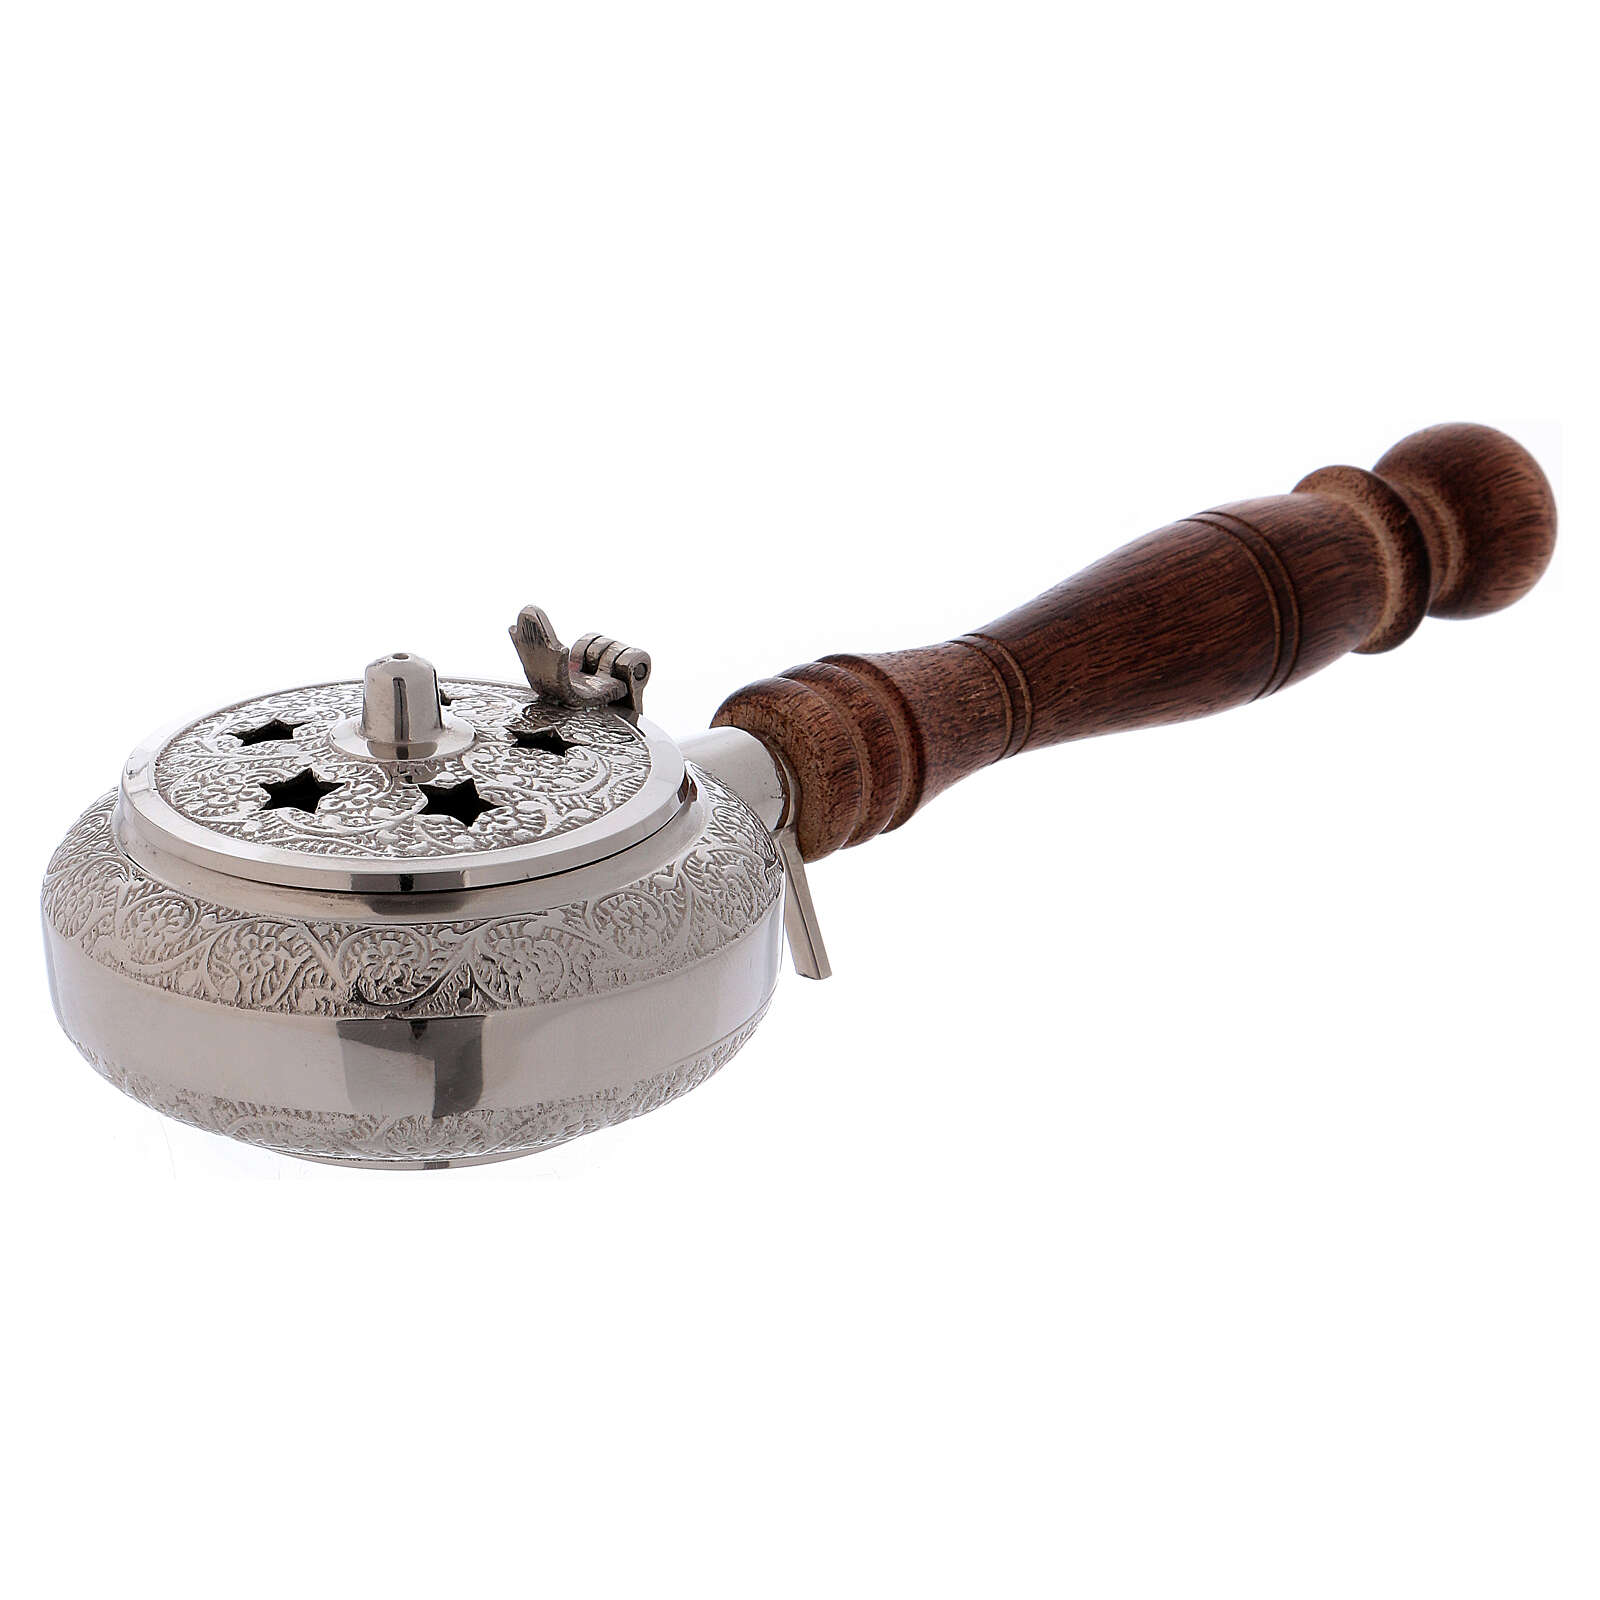 Incense burner in nickel-plated brass top with stars and wood handle 3